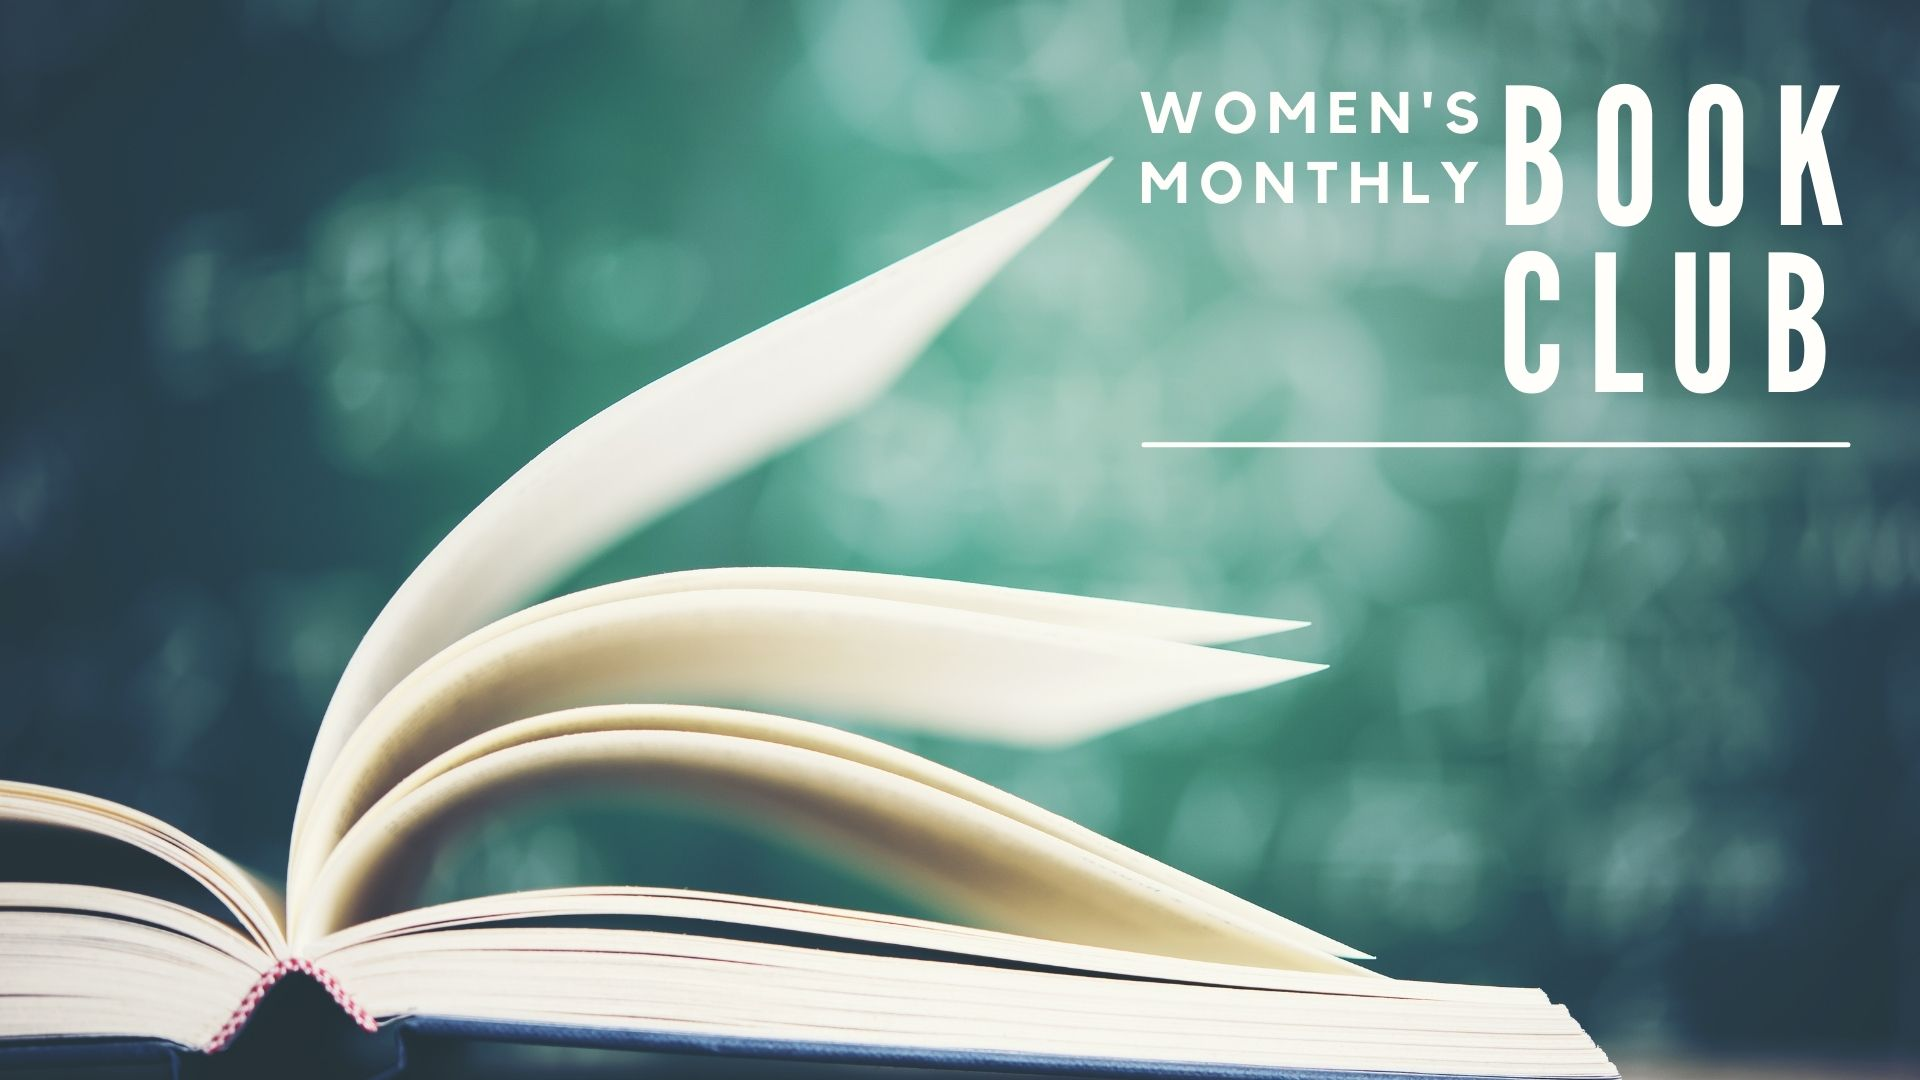 Women's Monthly Book Club image